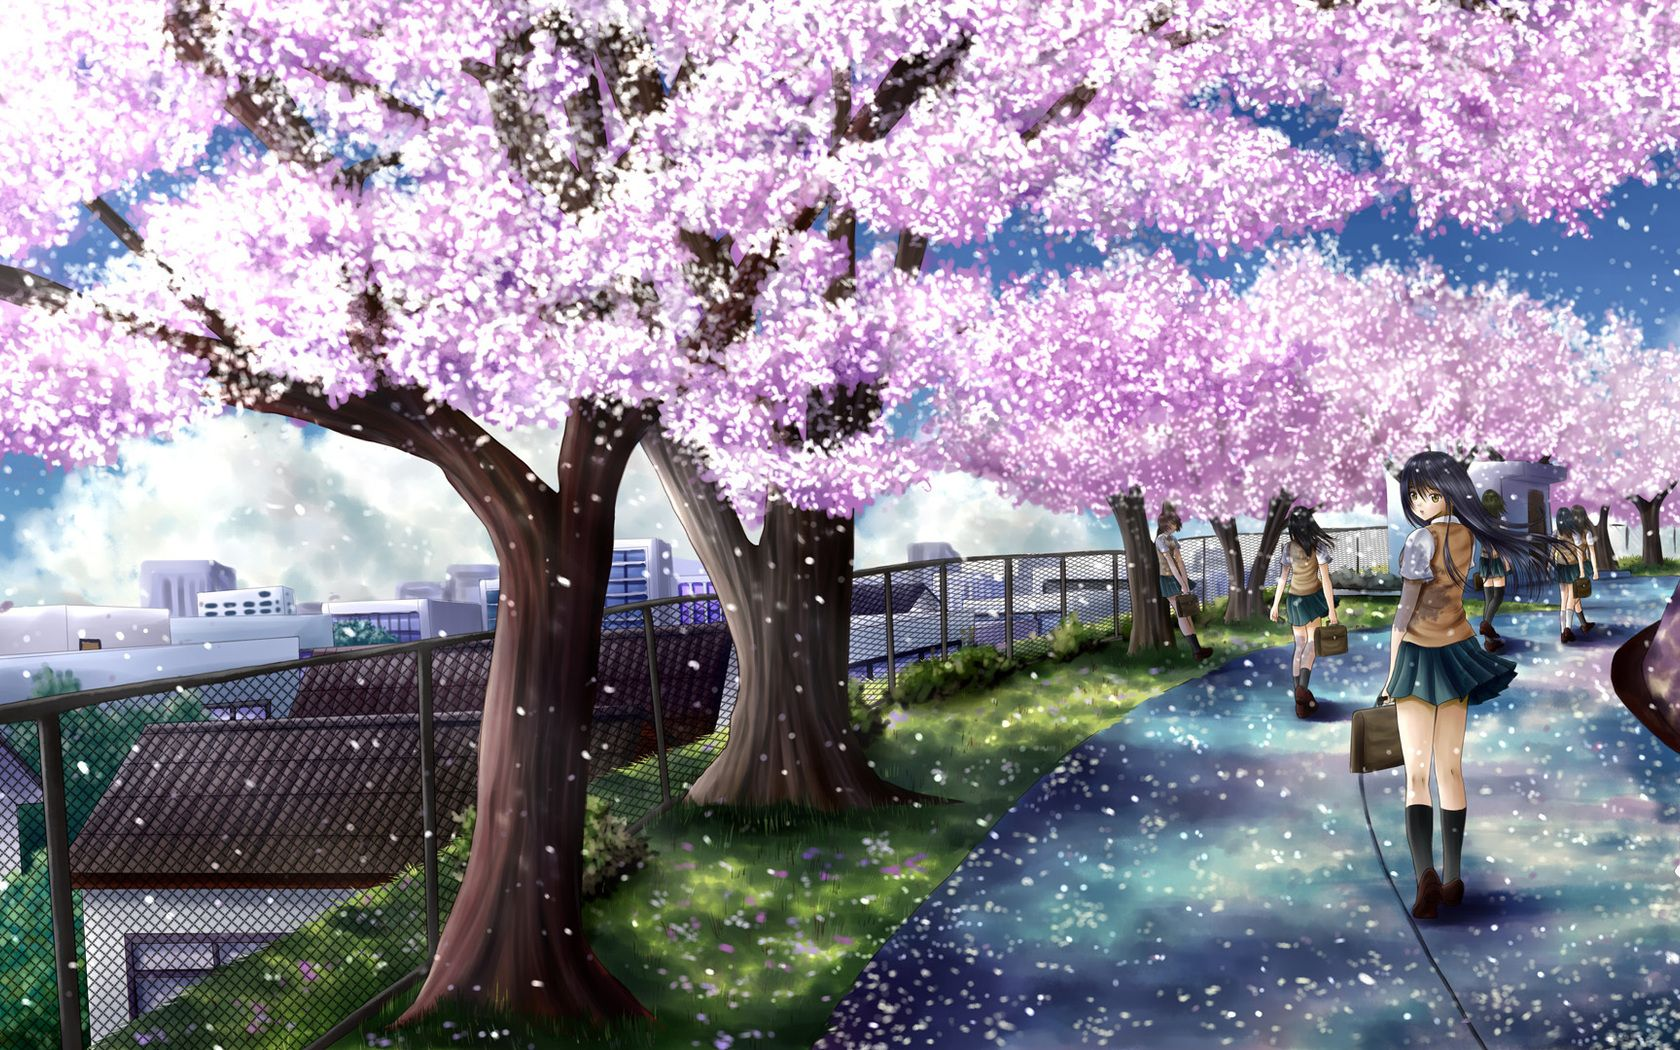 Pin By Kalyani On Anime Pinterest Anime Scenery Anime And Anime Art